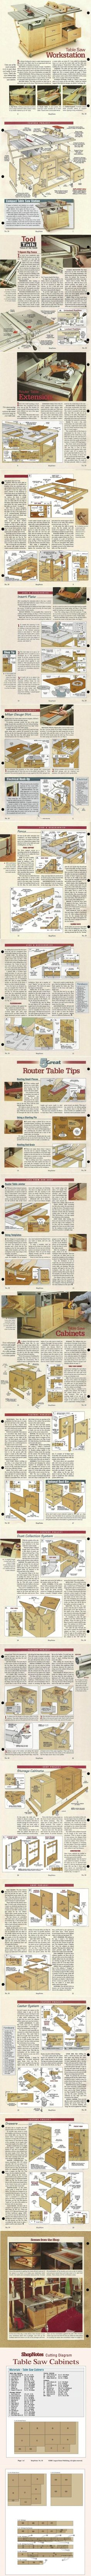 Searching to find recommendations in relation to woodworking? http://woodesigns.4web2refer.com/ supplies these things!